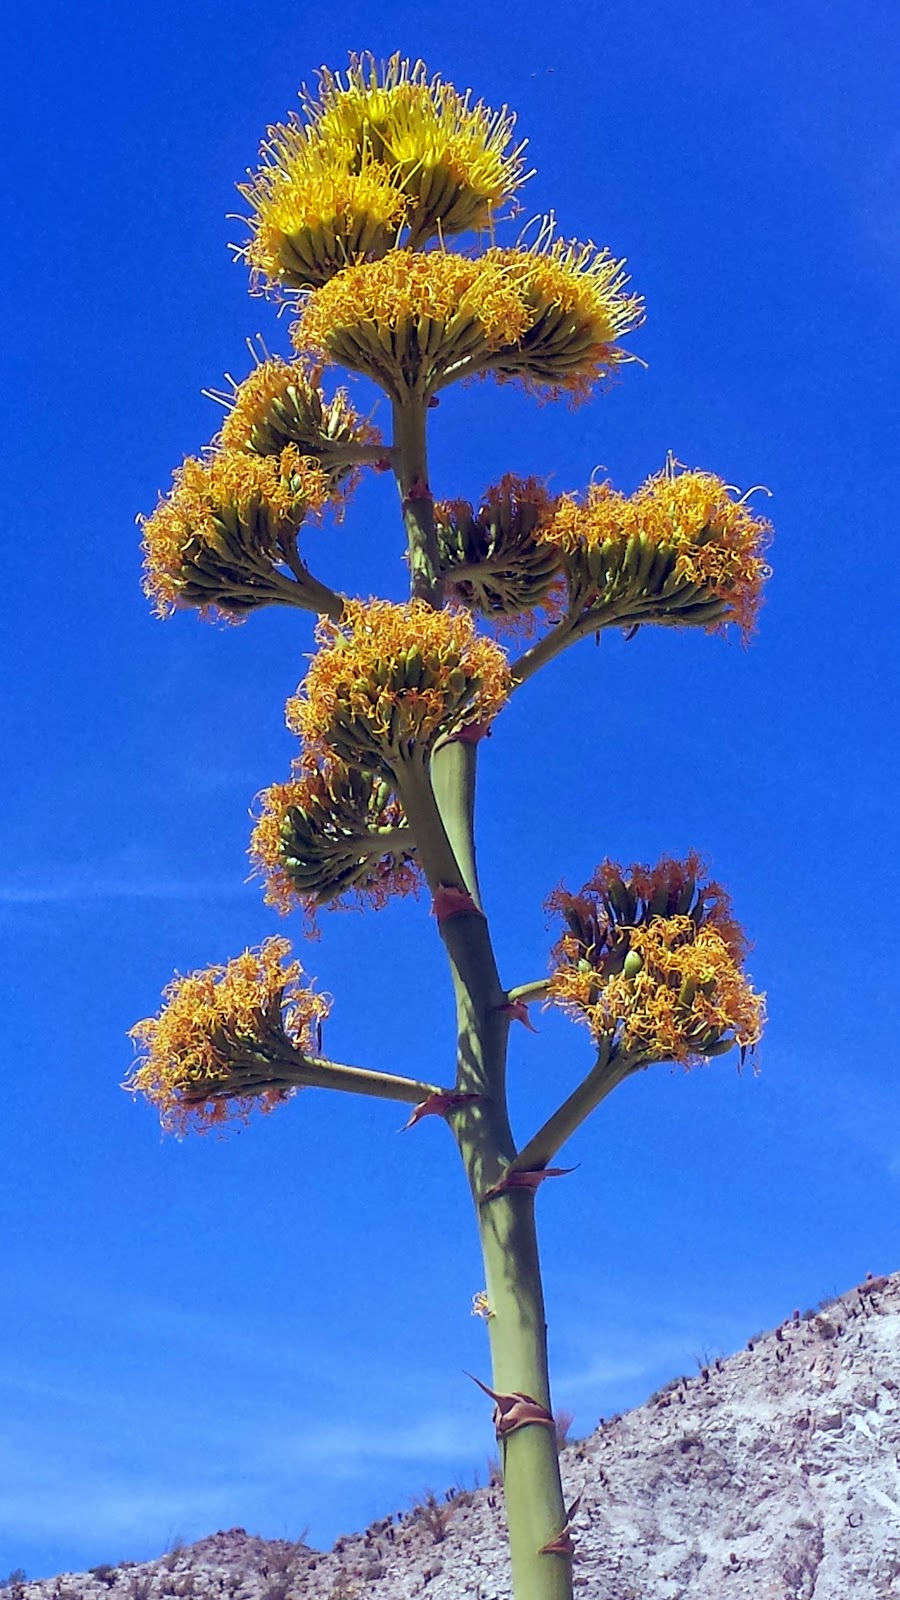 Blooming Agave or Century Plant